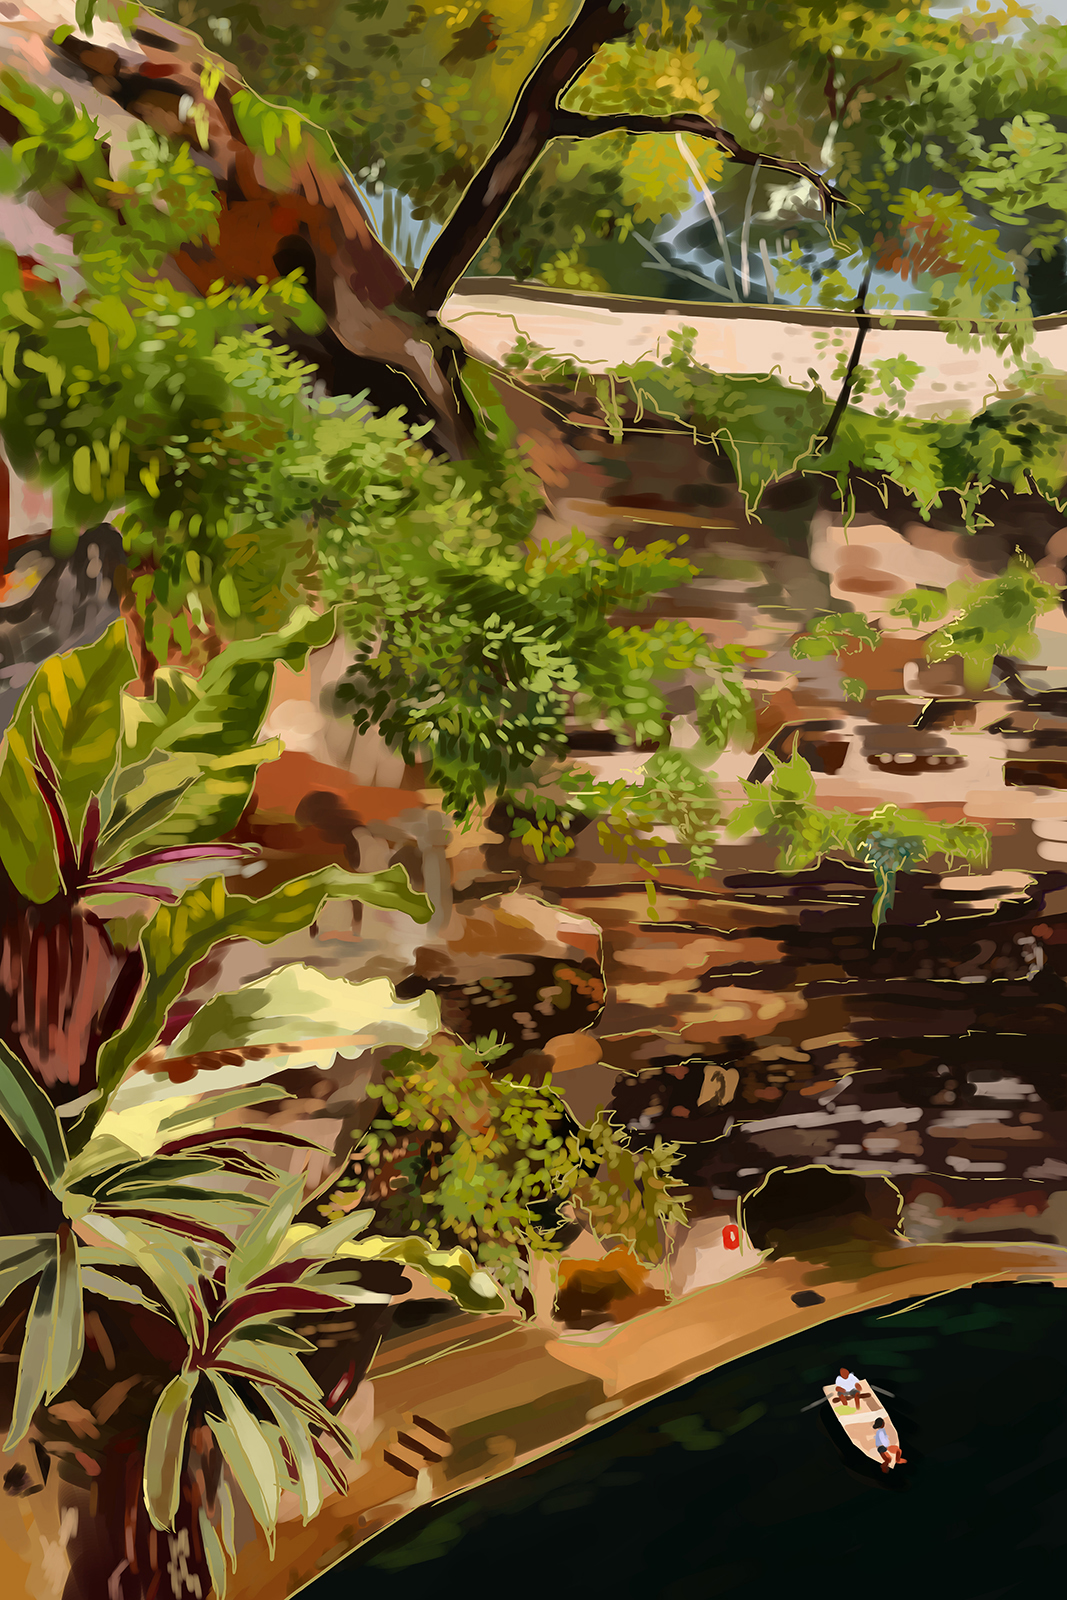 Digital painting of a cenote with a person in a rowboat. The brown stone walls are covered in foliage.